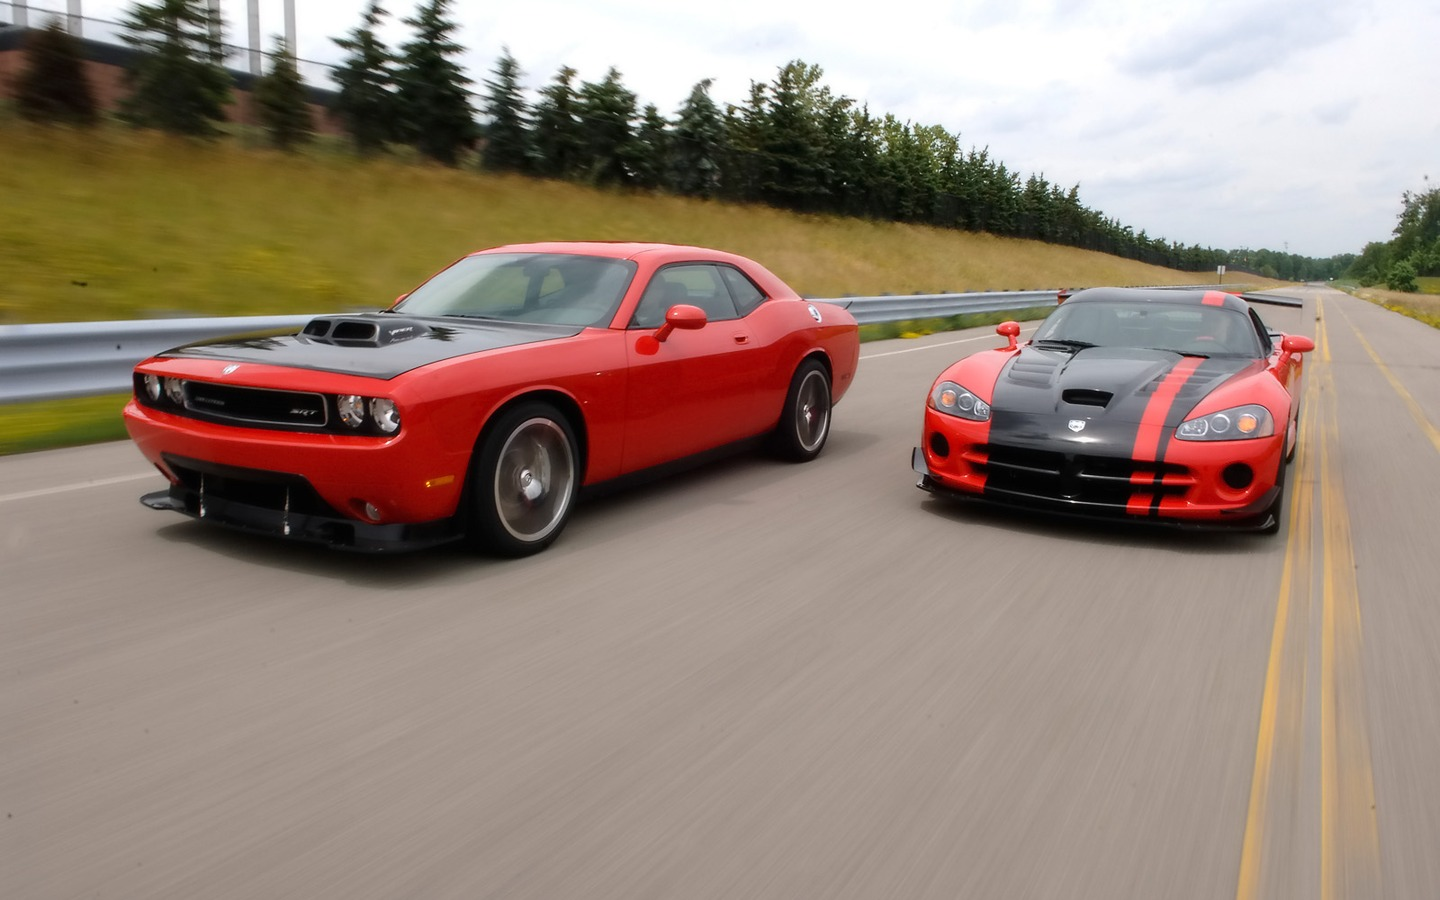 2009 Dodge Challenger Srt10 Concept Duo Front Angle Speed 1600×1200